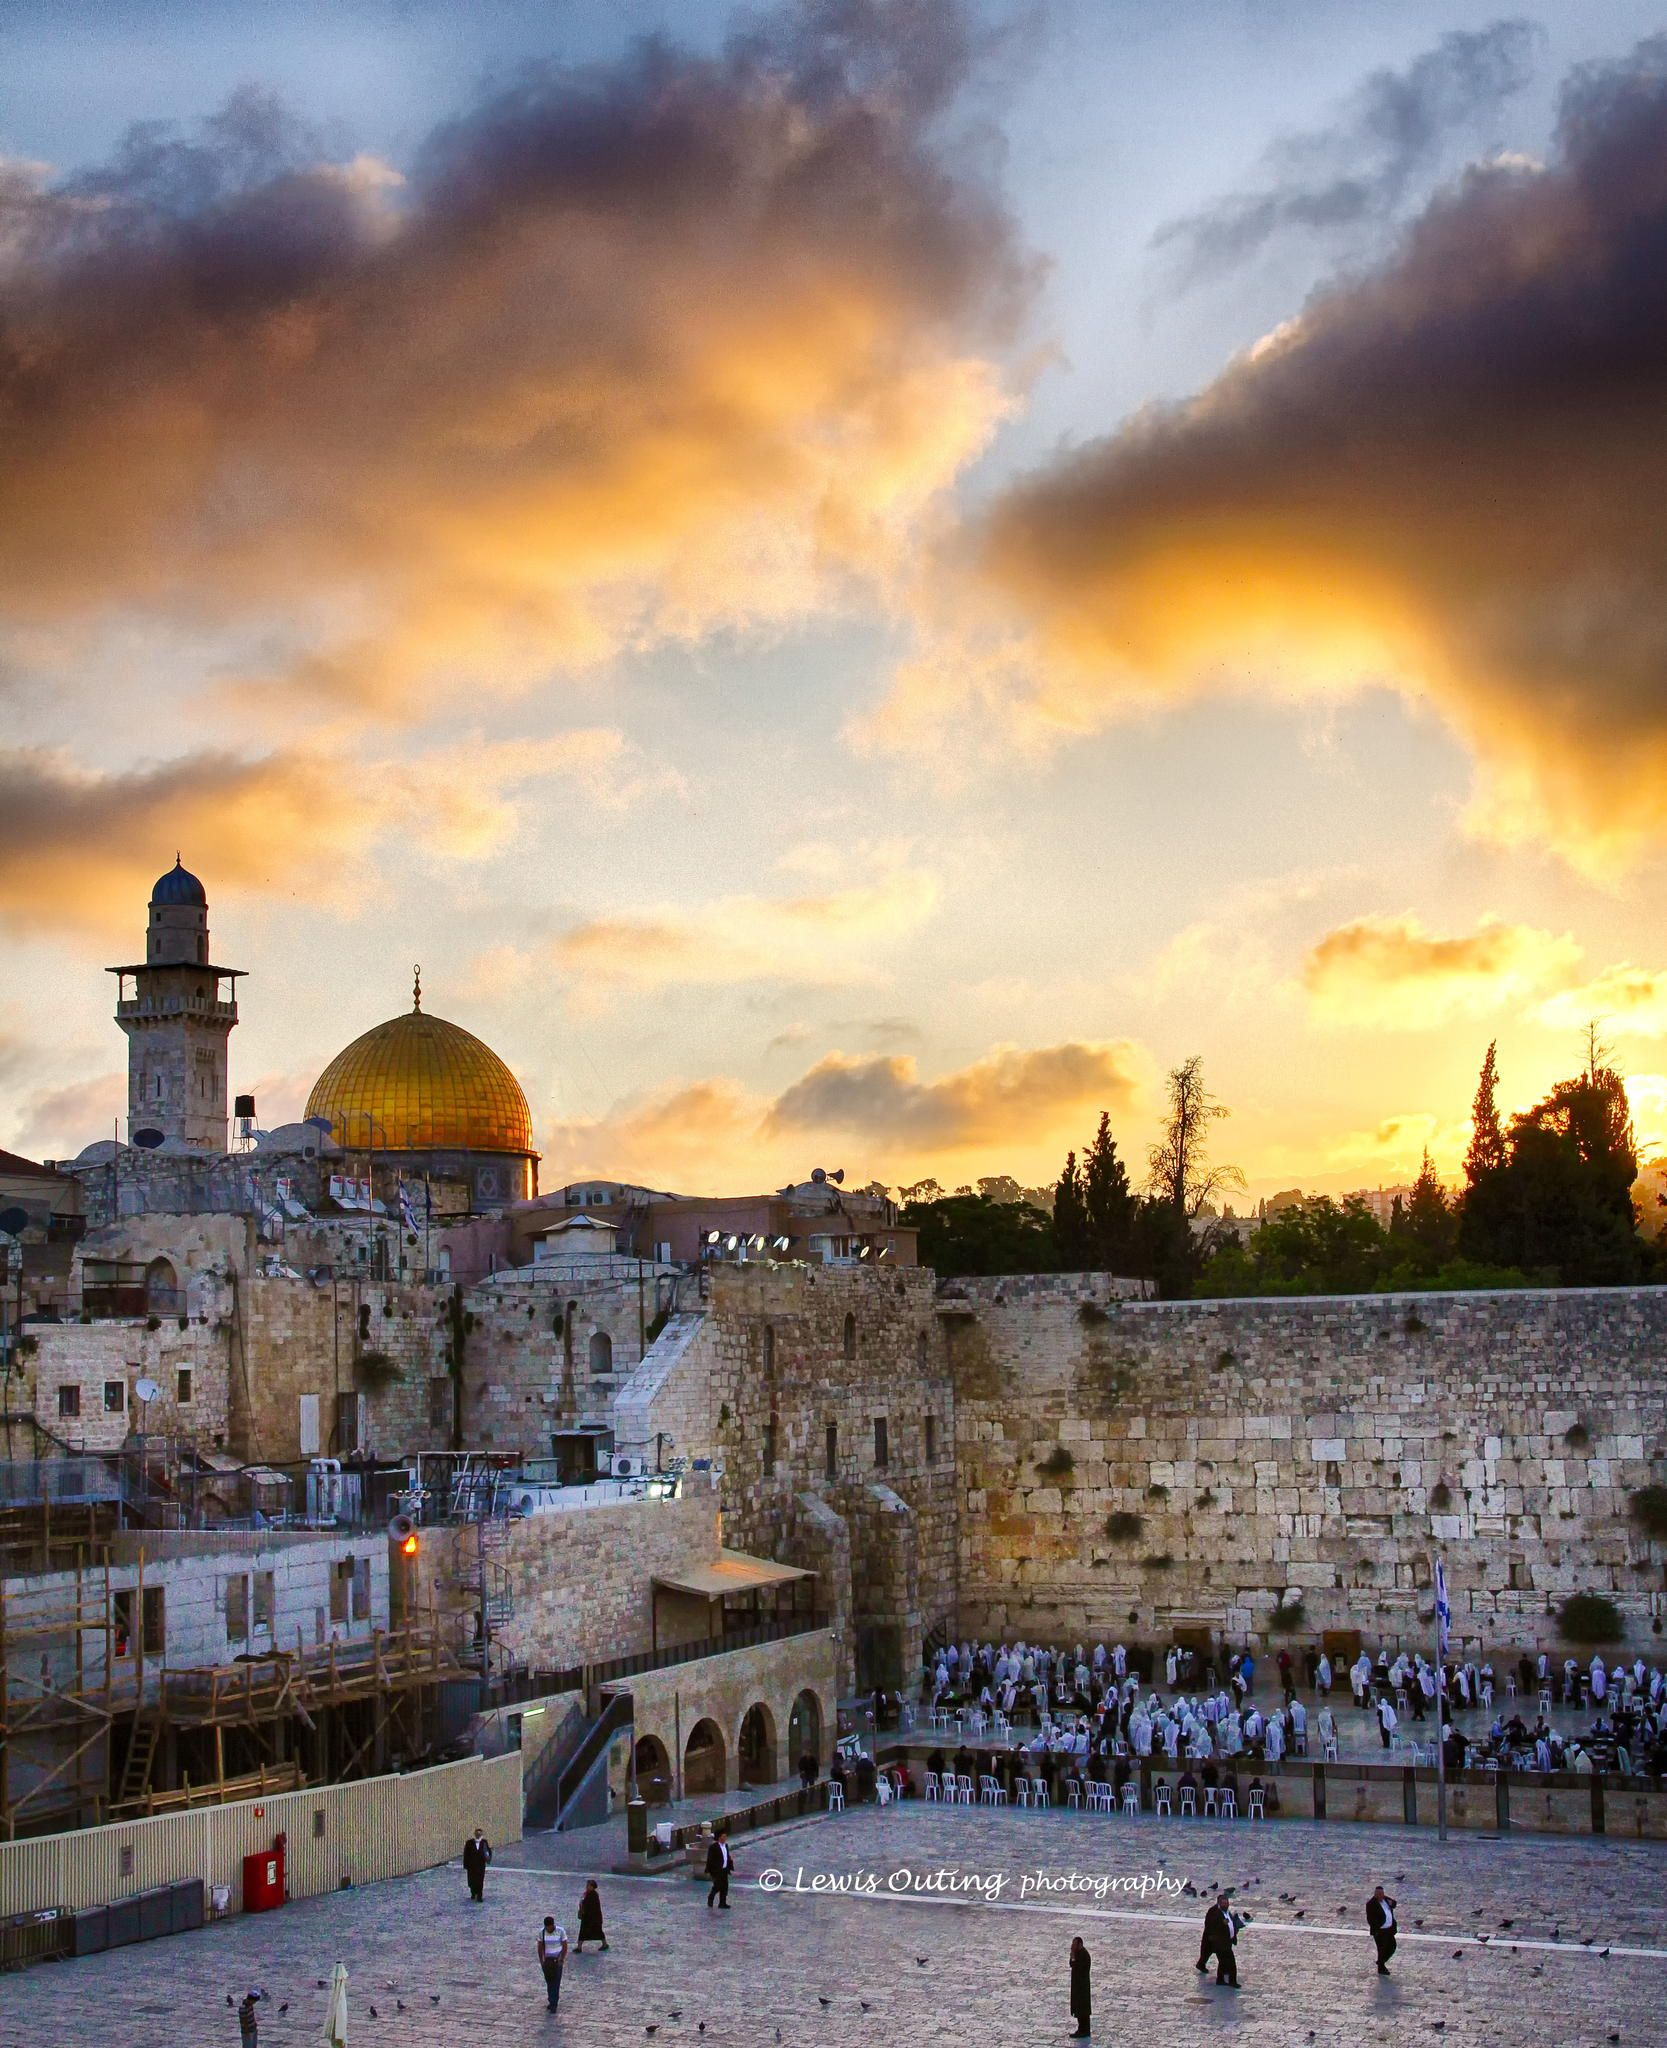 Western Wall, Old City Jerusalem   Lewis Outing has done the